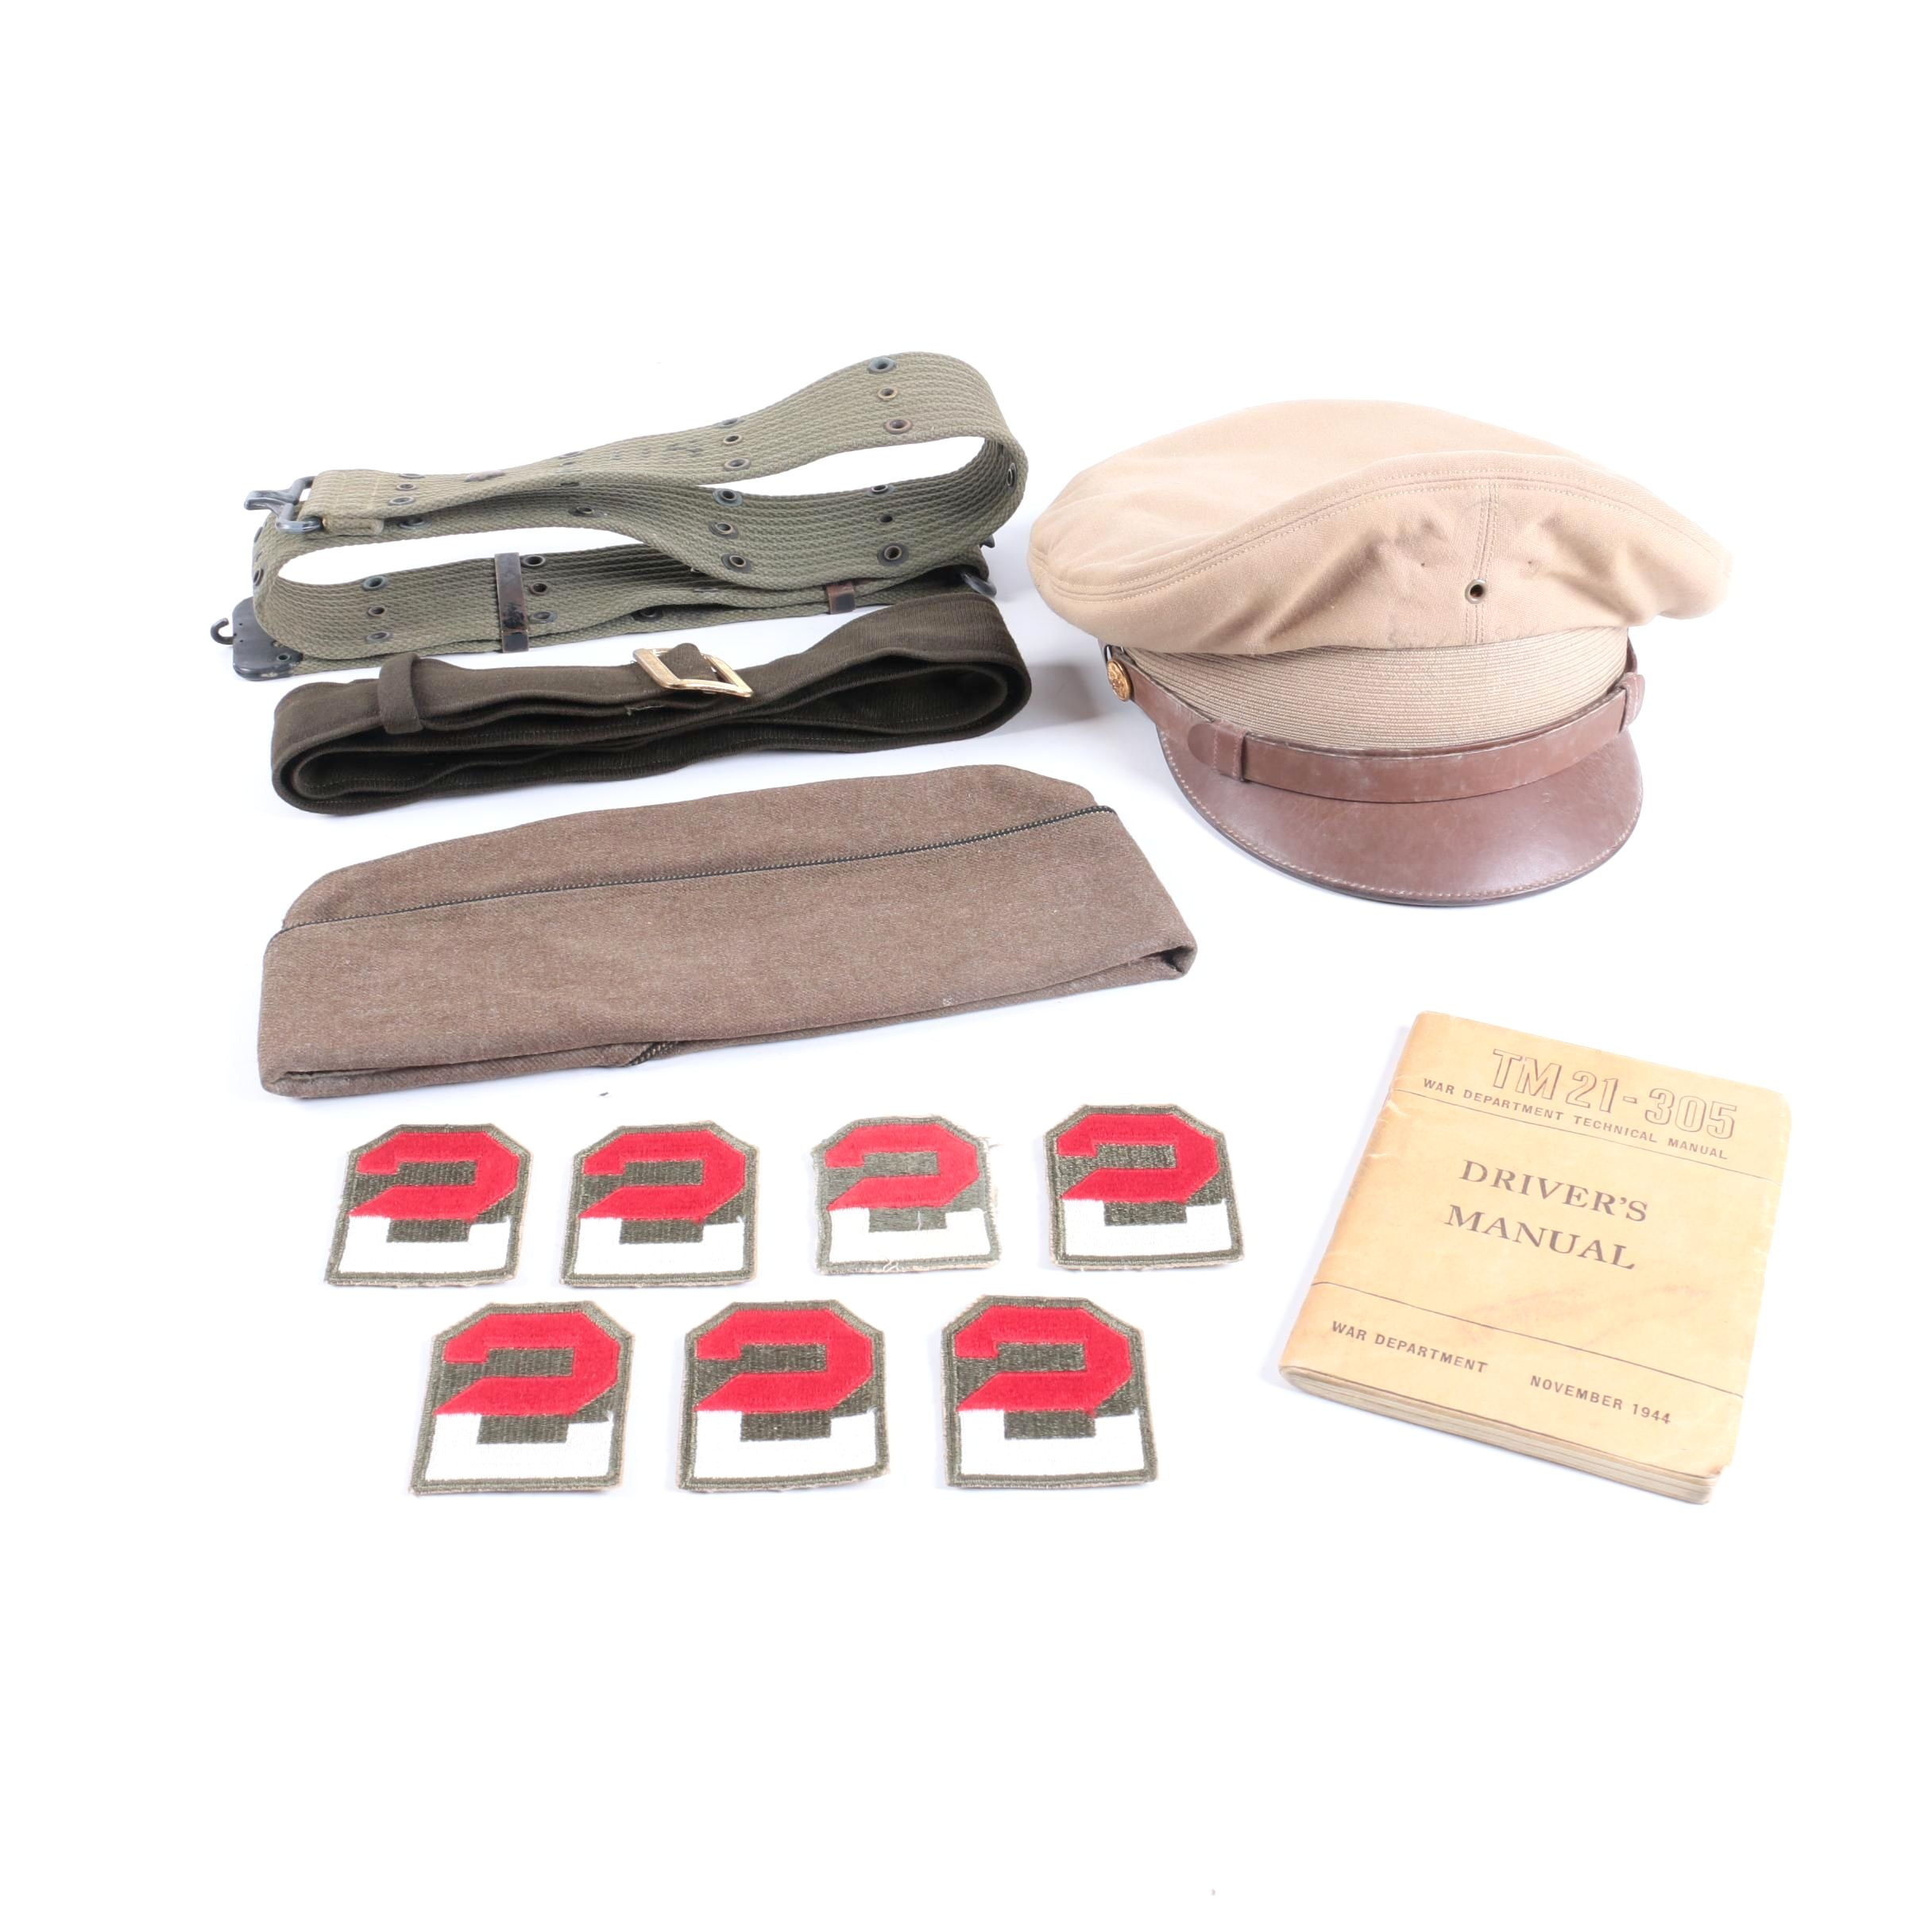 Vintage Military Accessories Including Caps, Belts, Patches, and Driver's Manual